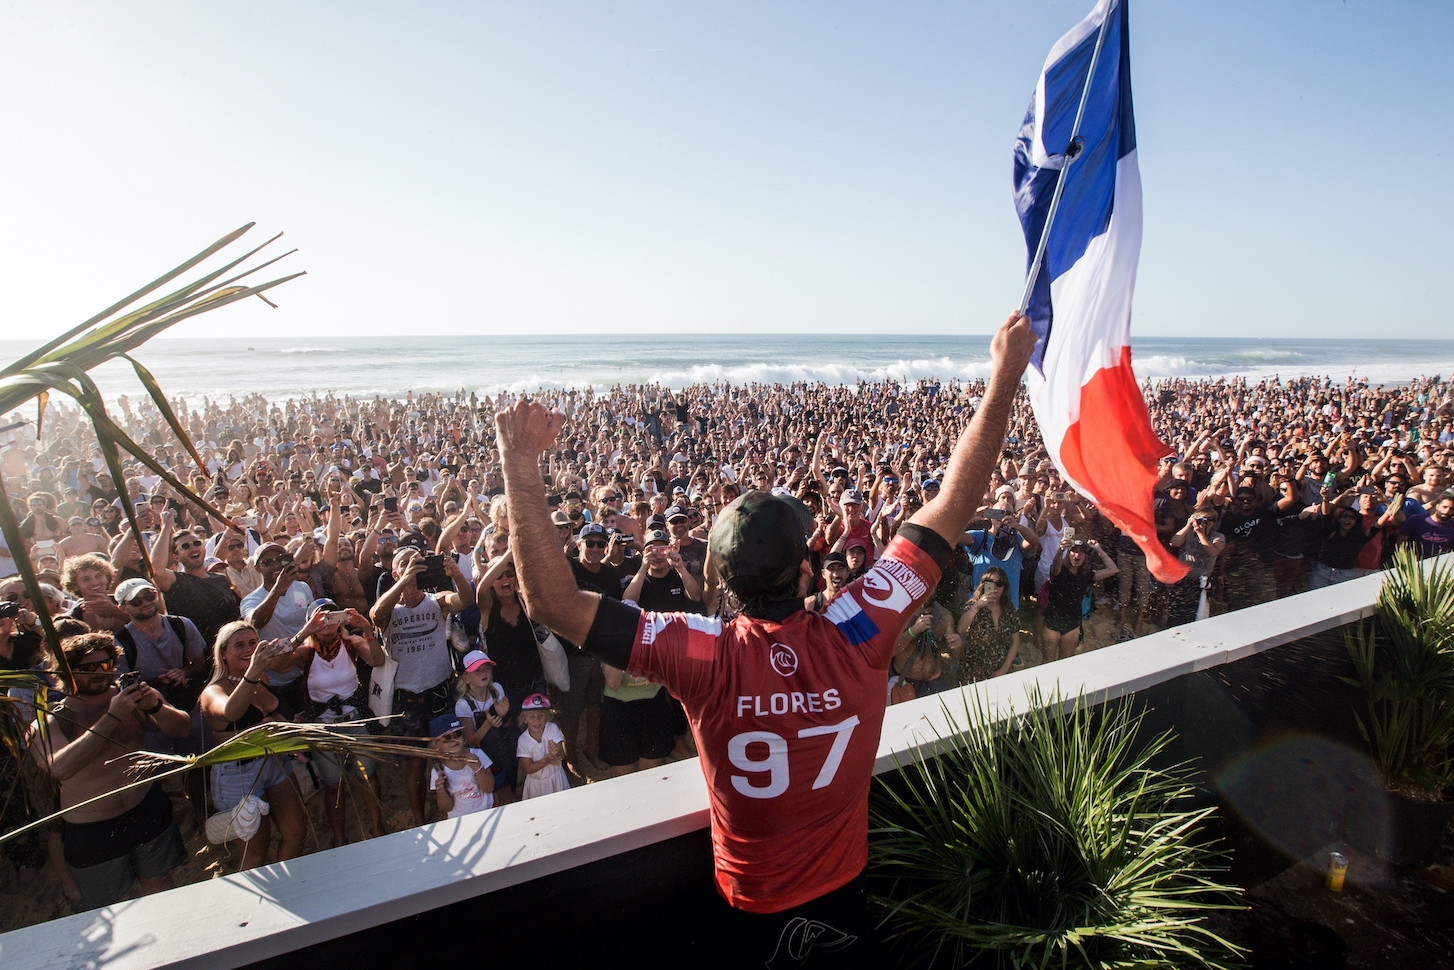 HOSSEGOR, FRANCE - OCTOBER 11: Jeremy Flores of France wins the 2019 Quiksilver Pro France for the first time in his career making it the first time a Frenchman has won in the history of the event at Le Graviere on October 11, 2019 in Hossegor, France.  (Photo by Laurent Masurel/WSL via Getty Images)